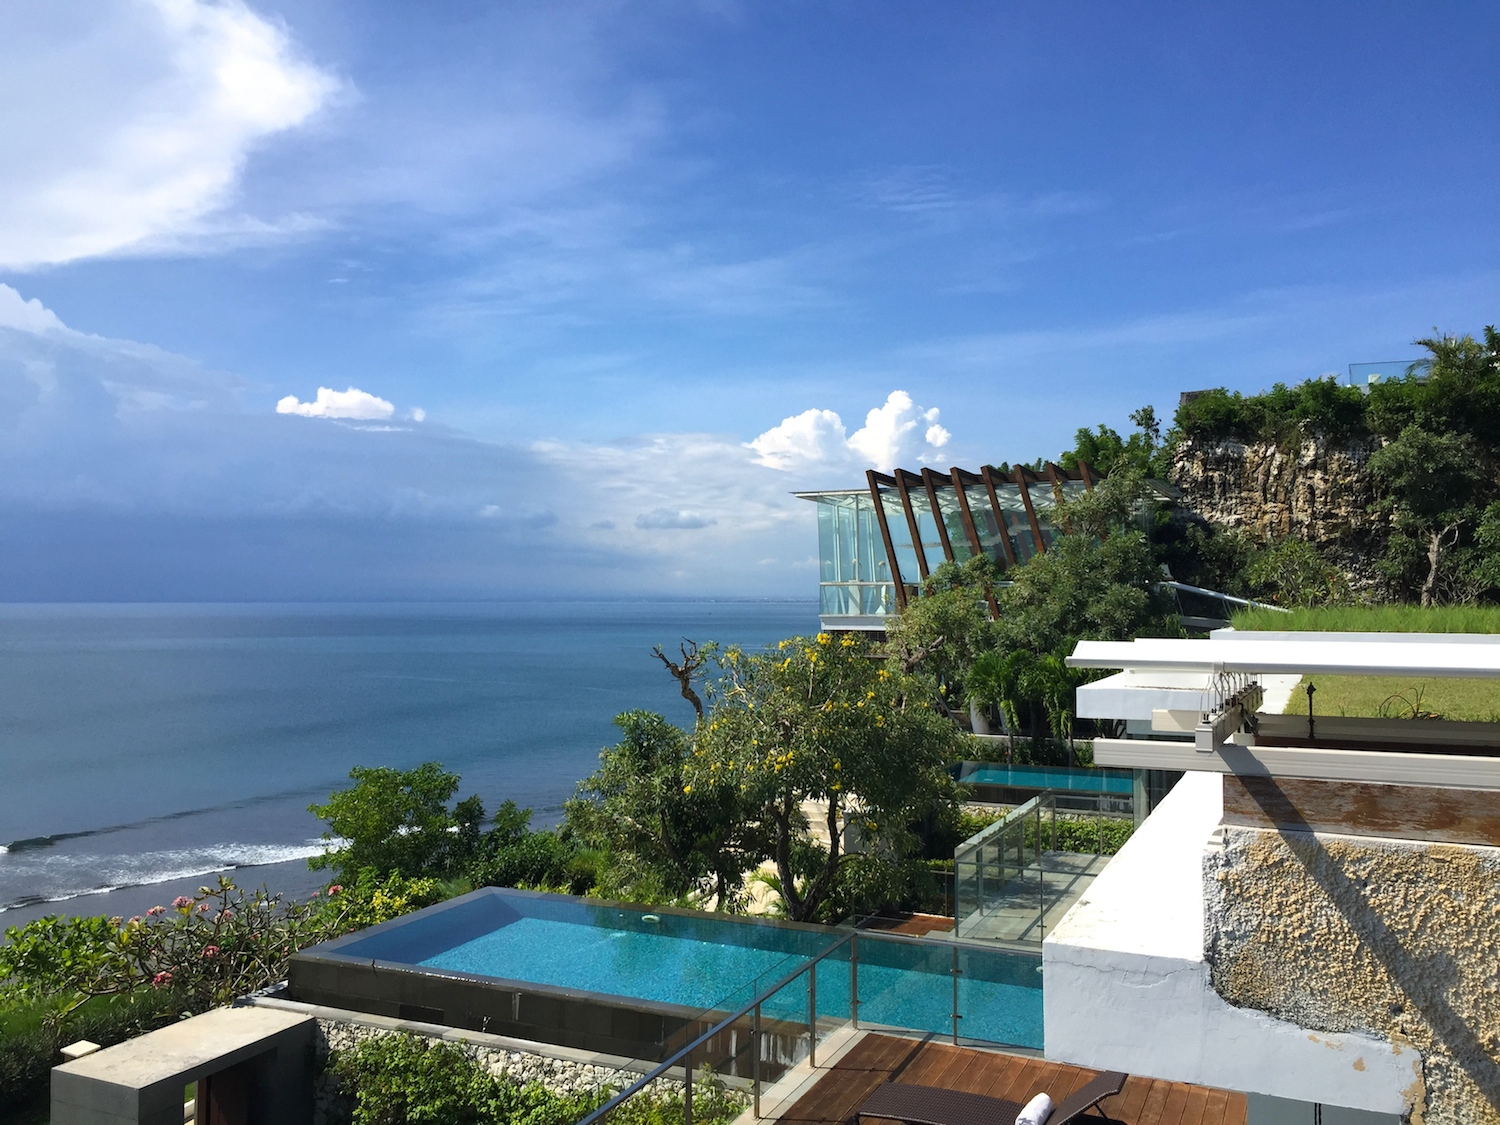 The Anantara Chapel View